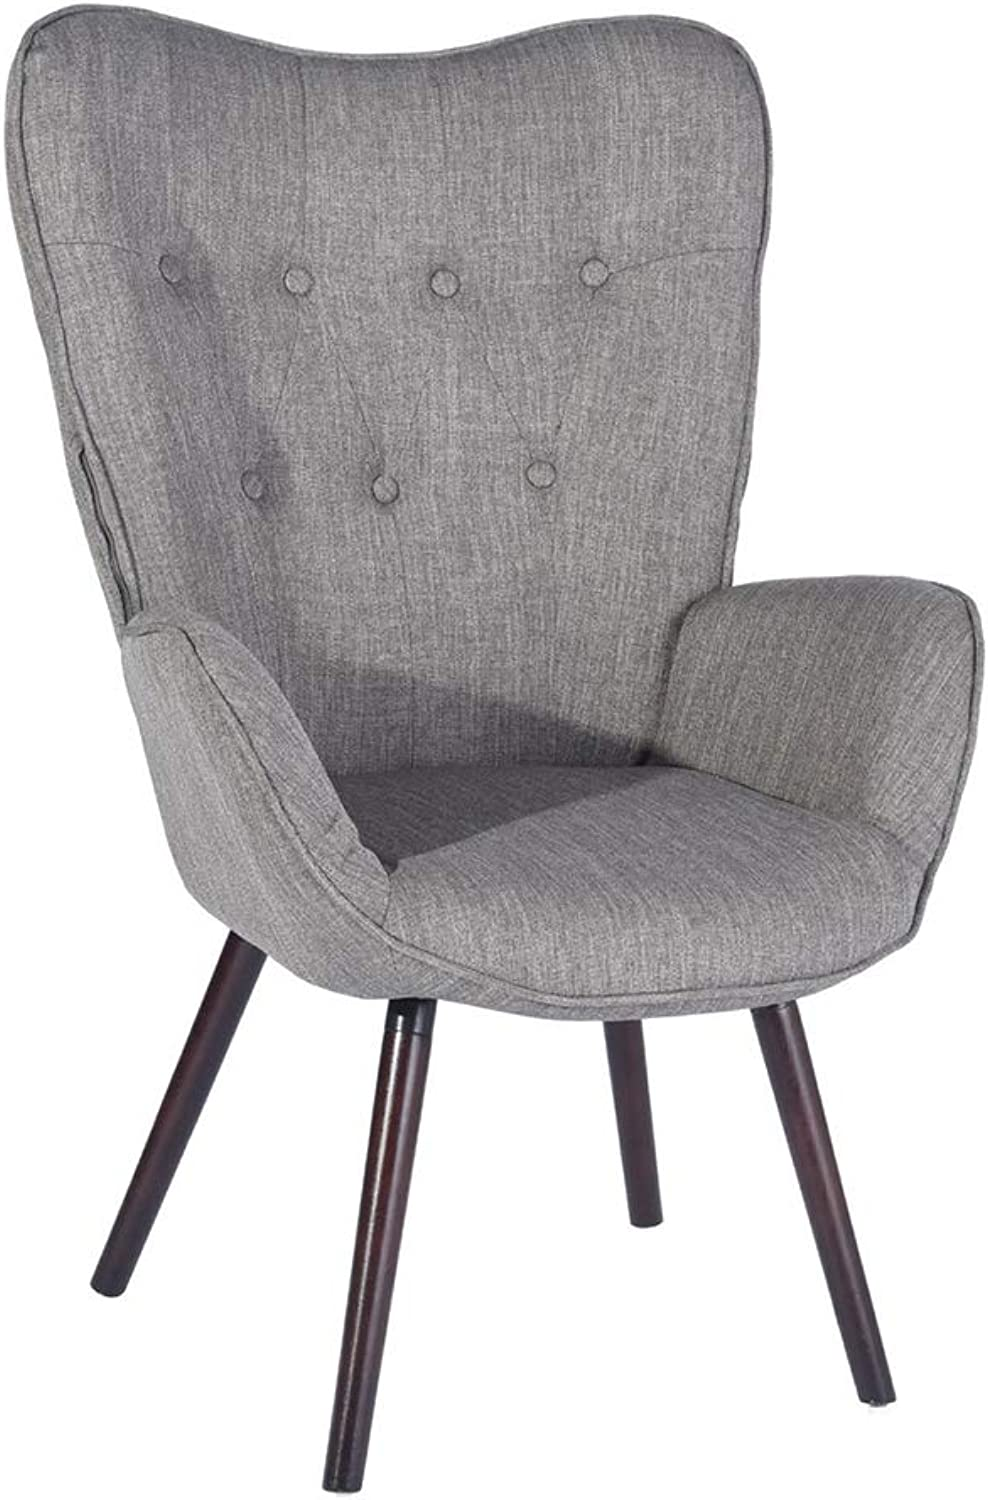 Upholstered Armchair Fabric Cover - Grey